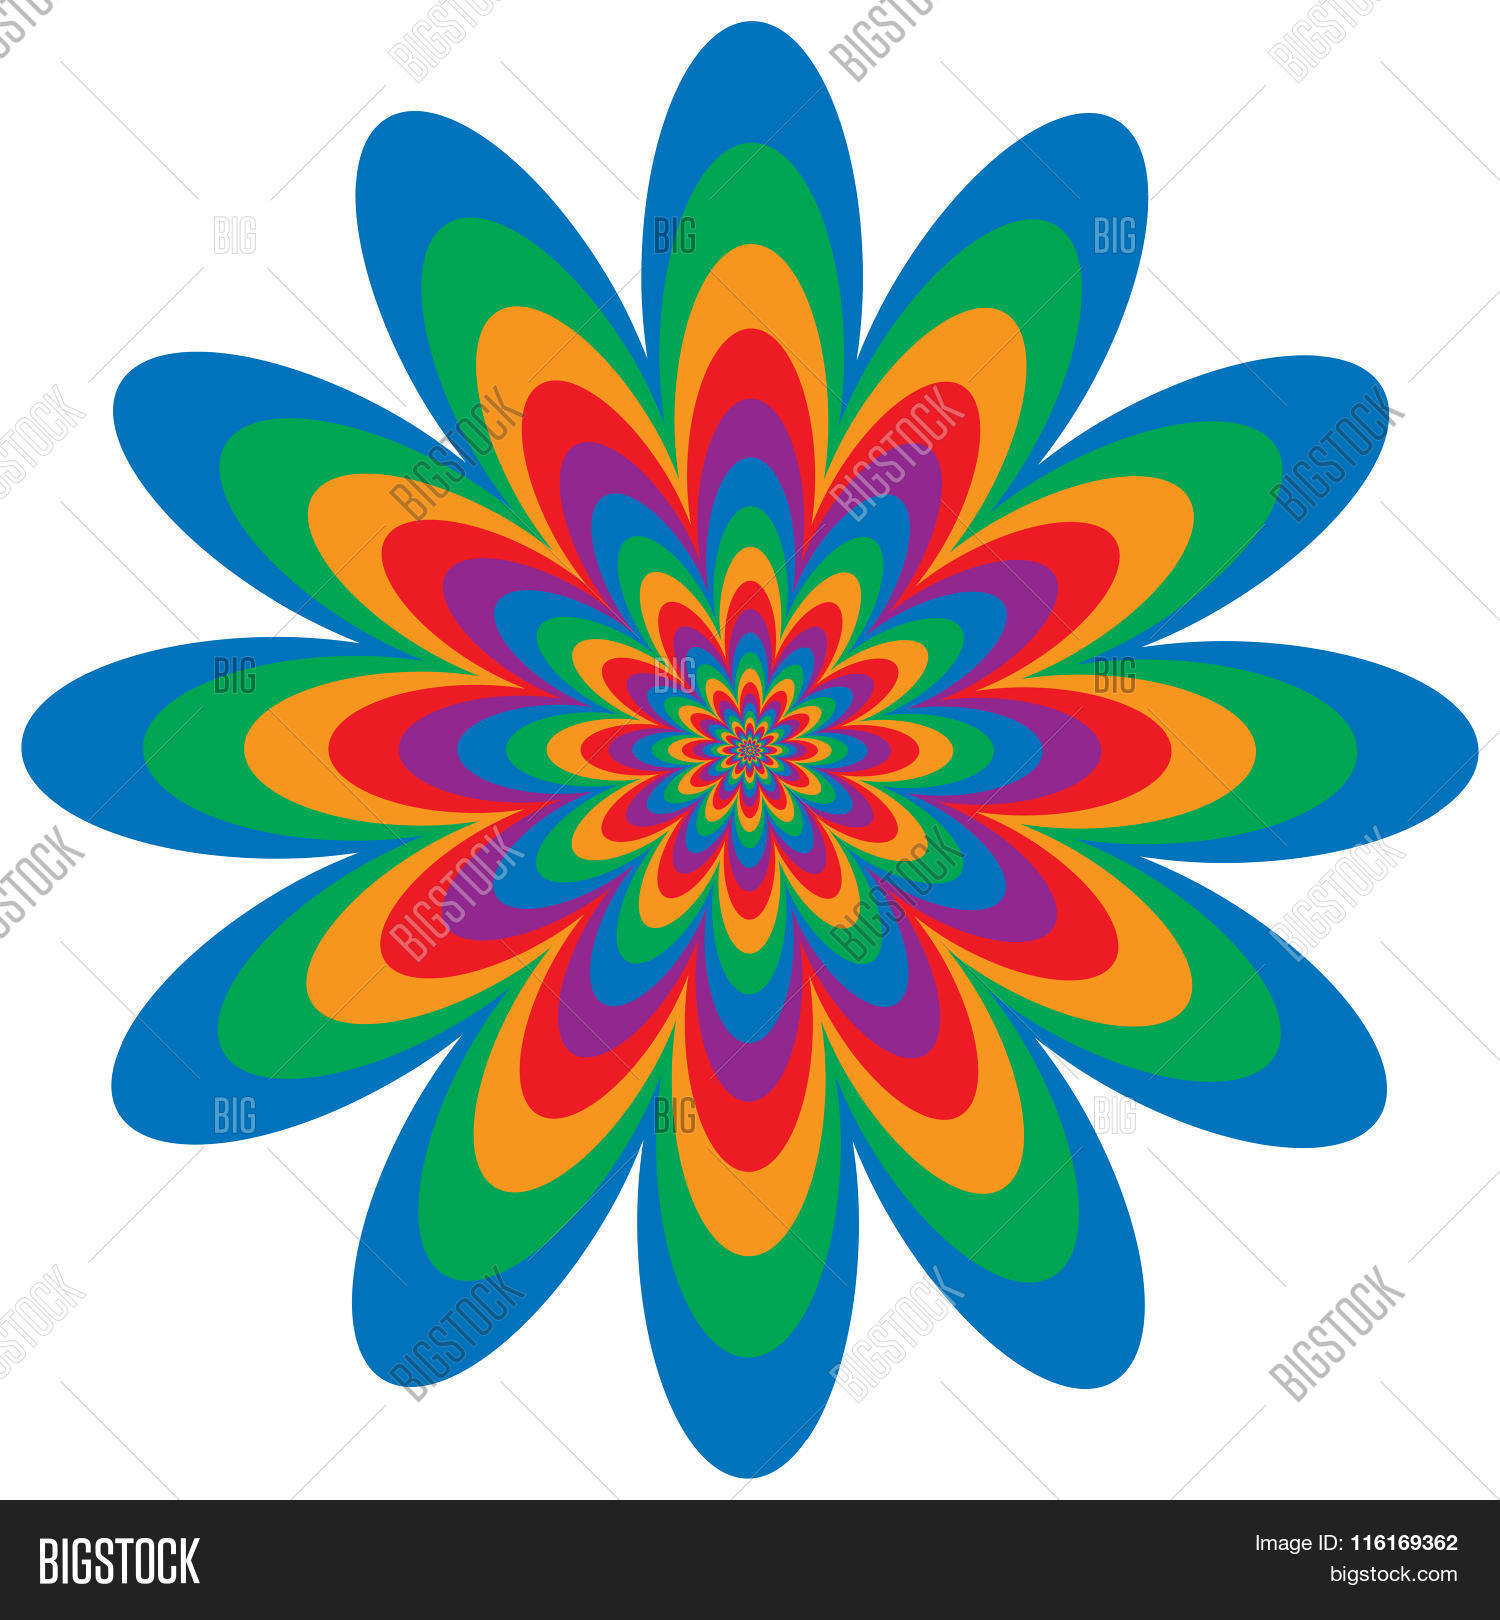 Op Art Flower Optical Illusion Design In Primary And Secondary Colors Are Grouped For